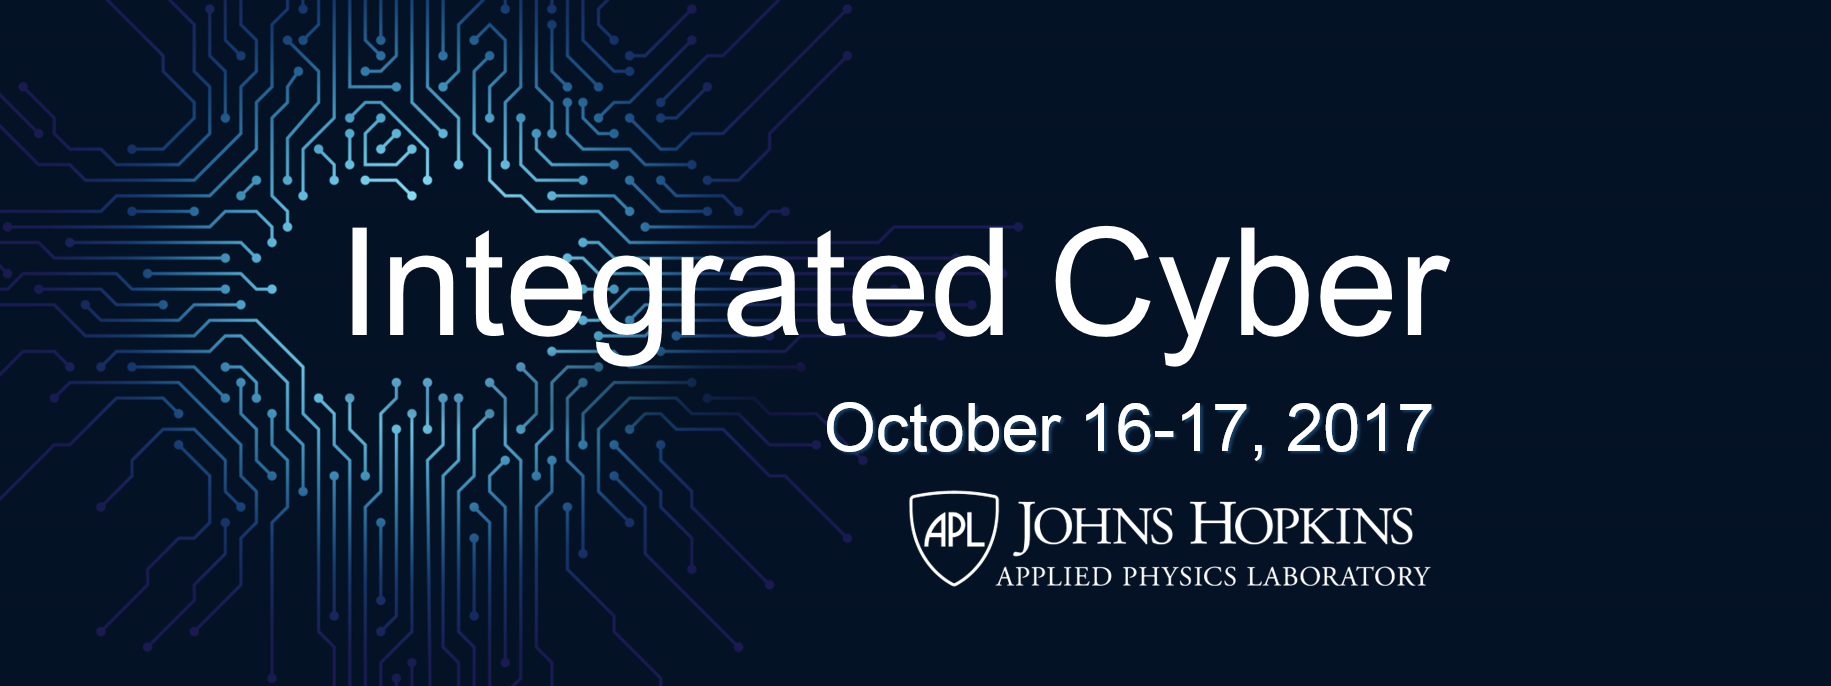 Integrated Cyber